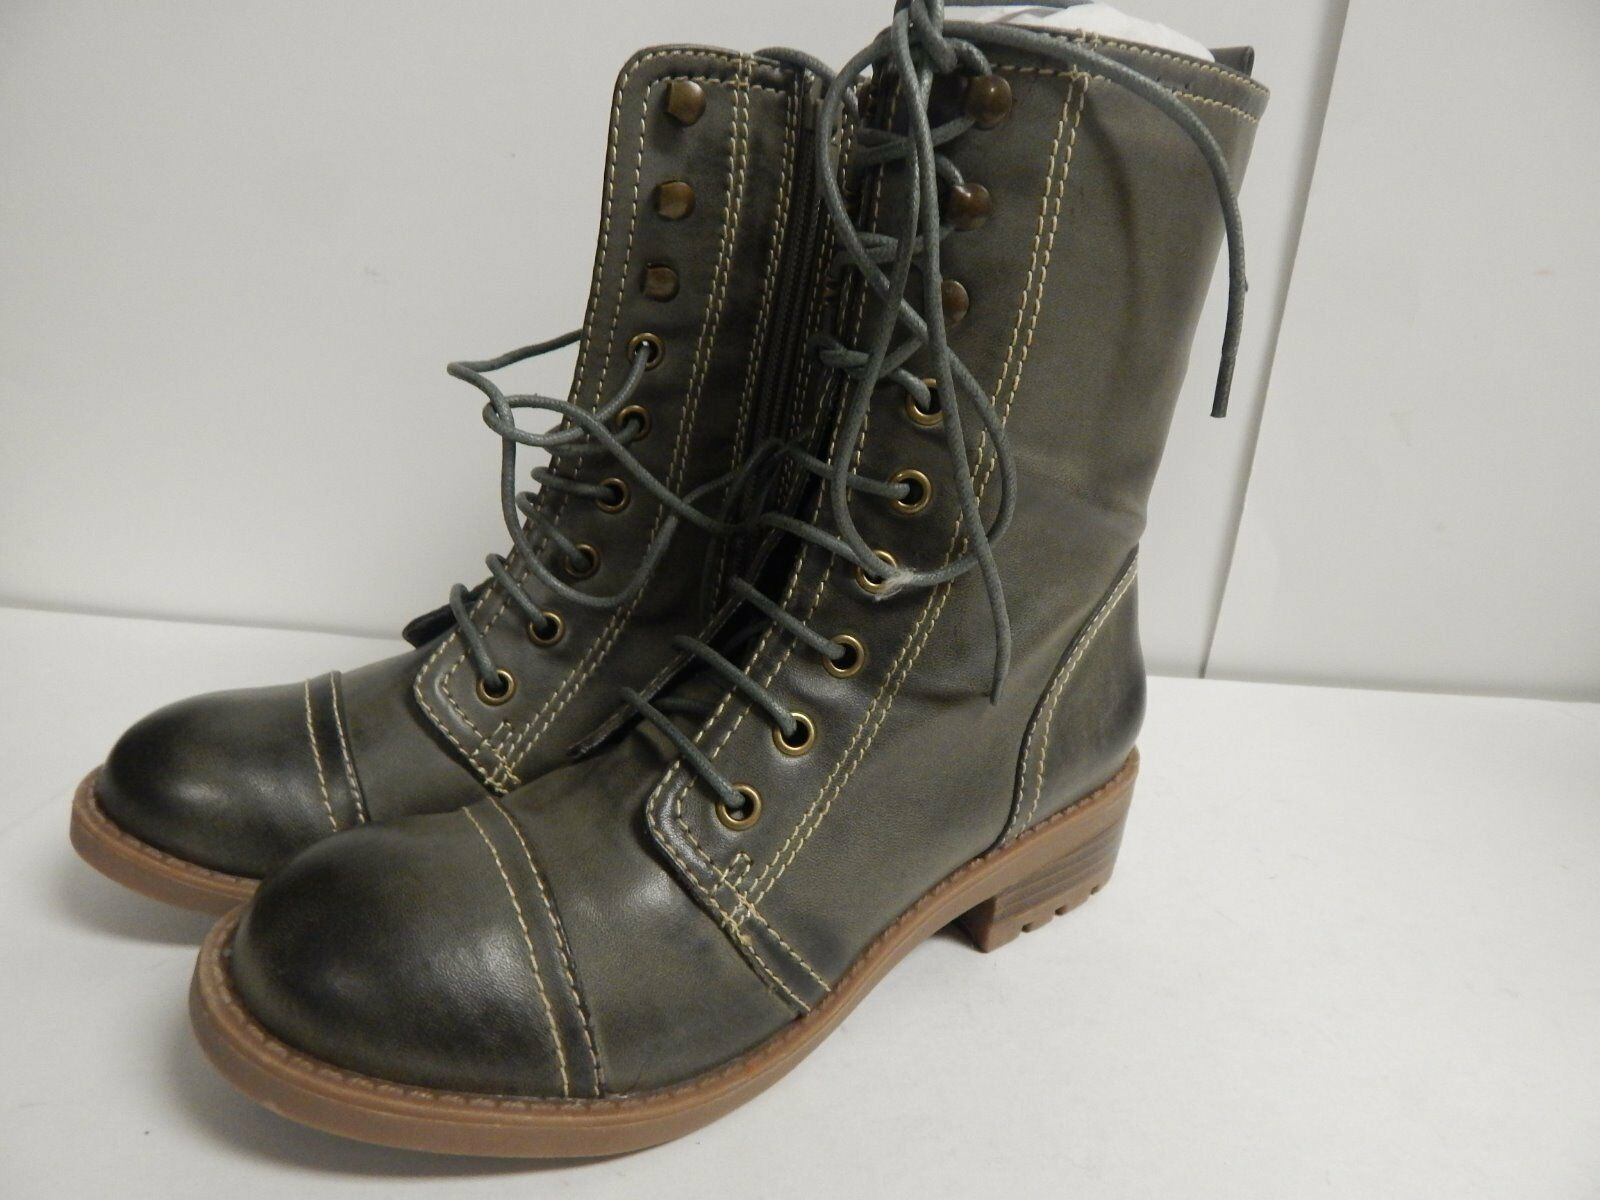 Kensie Girl Roper Lace Up Military Boot 5.5 M Vintage Green NEU with Box